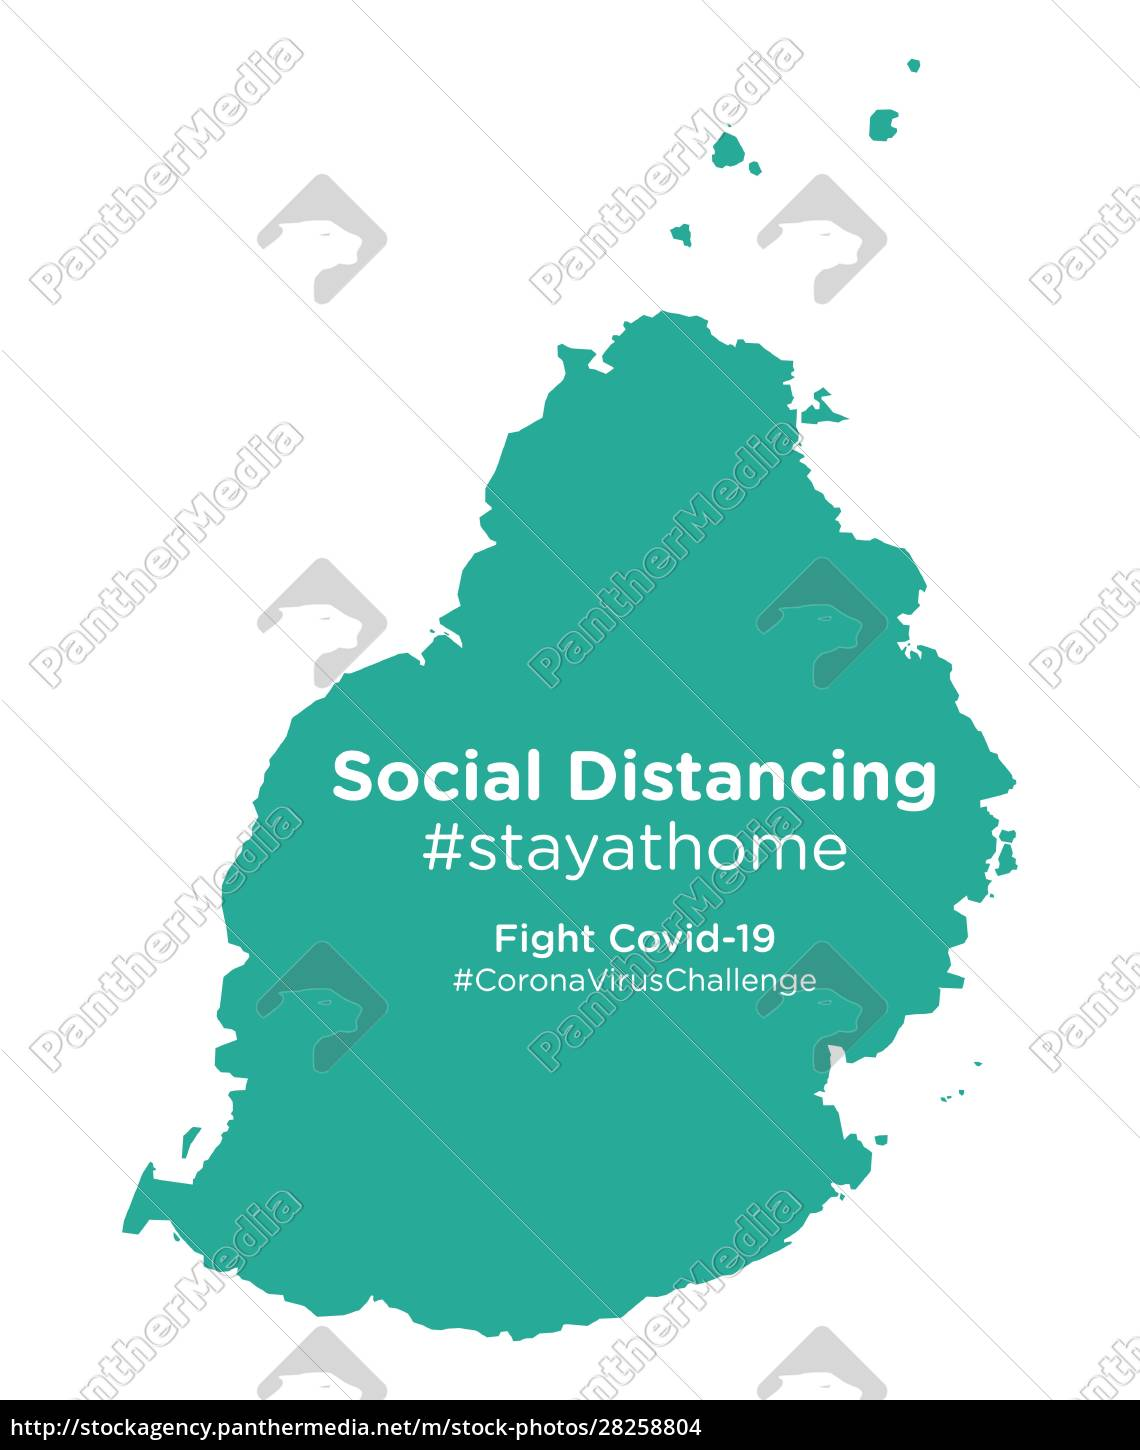 mauritius, map, with, social, distancing, stayathome - 28258804